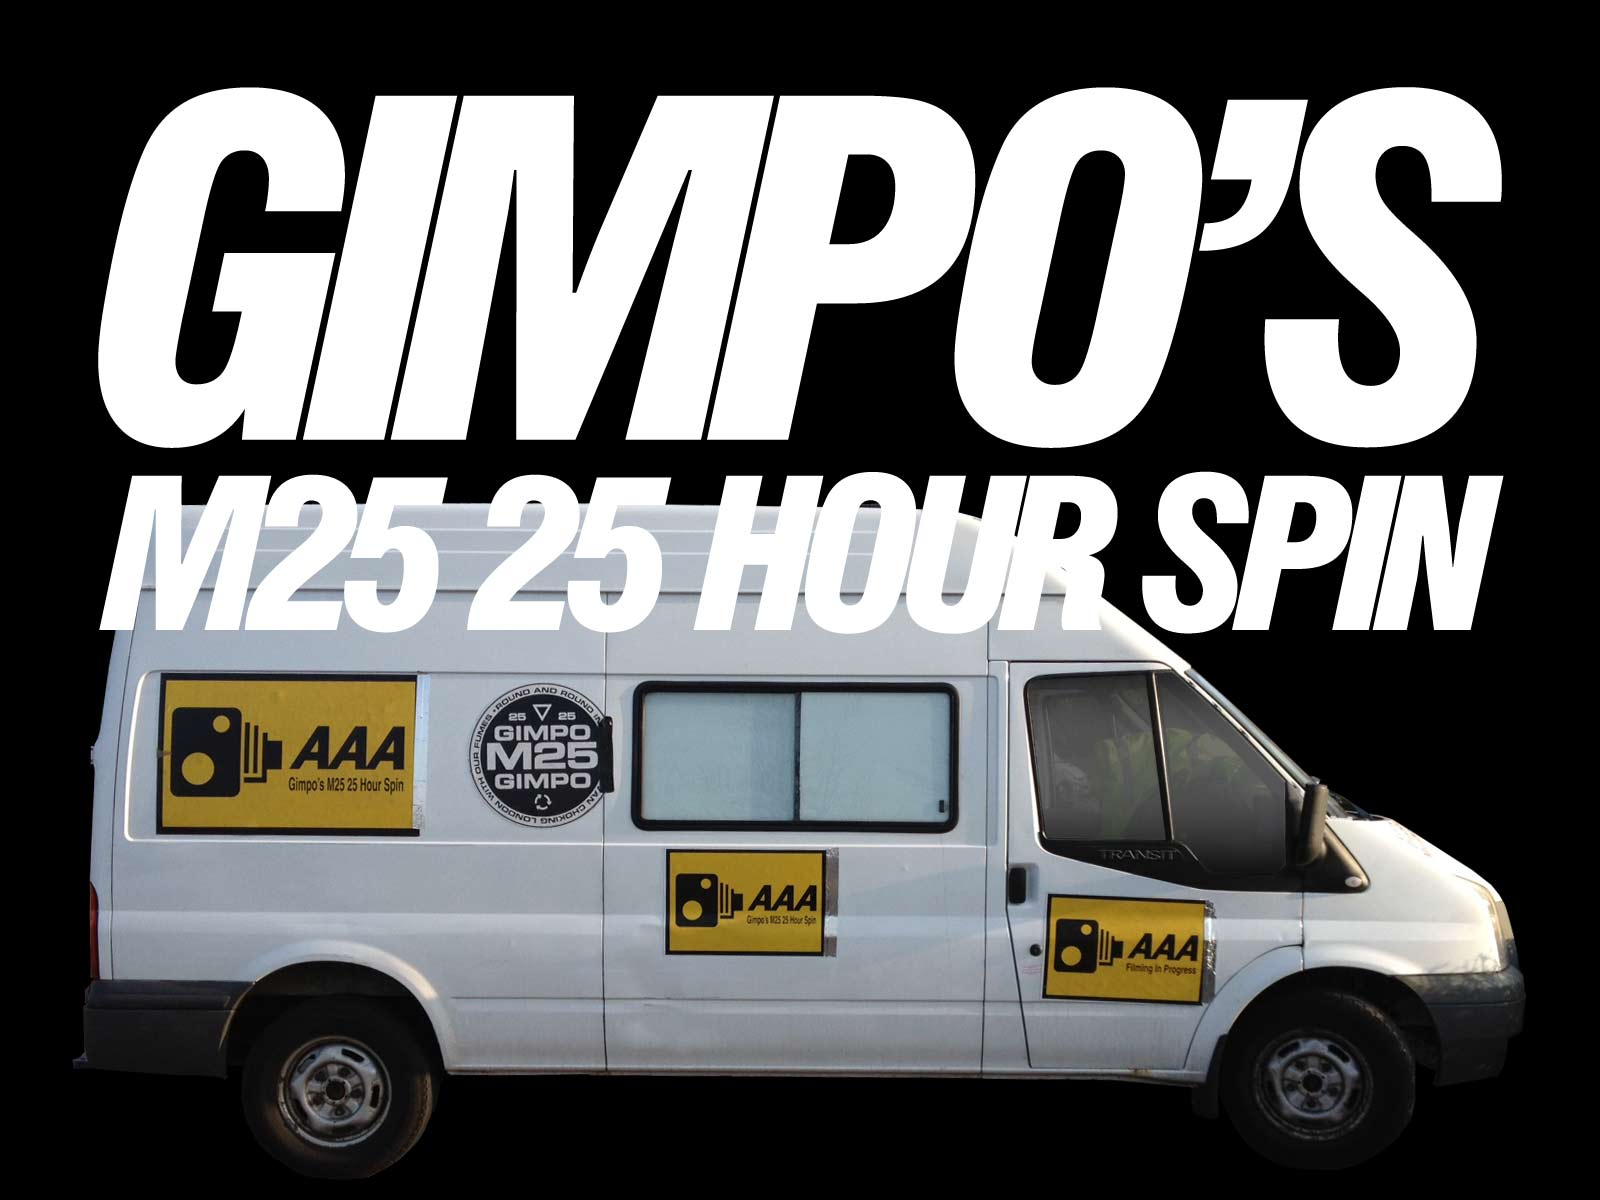 Gimpo's M25 25 Hour Spin 2015